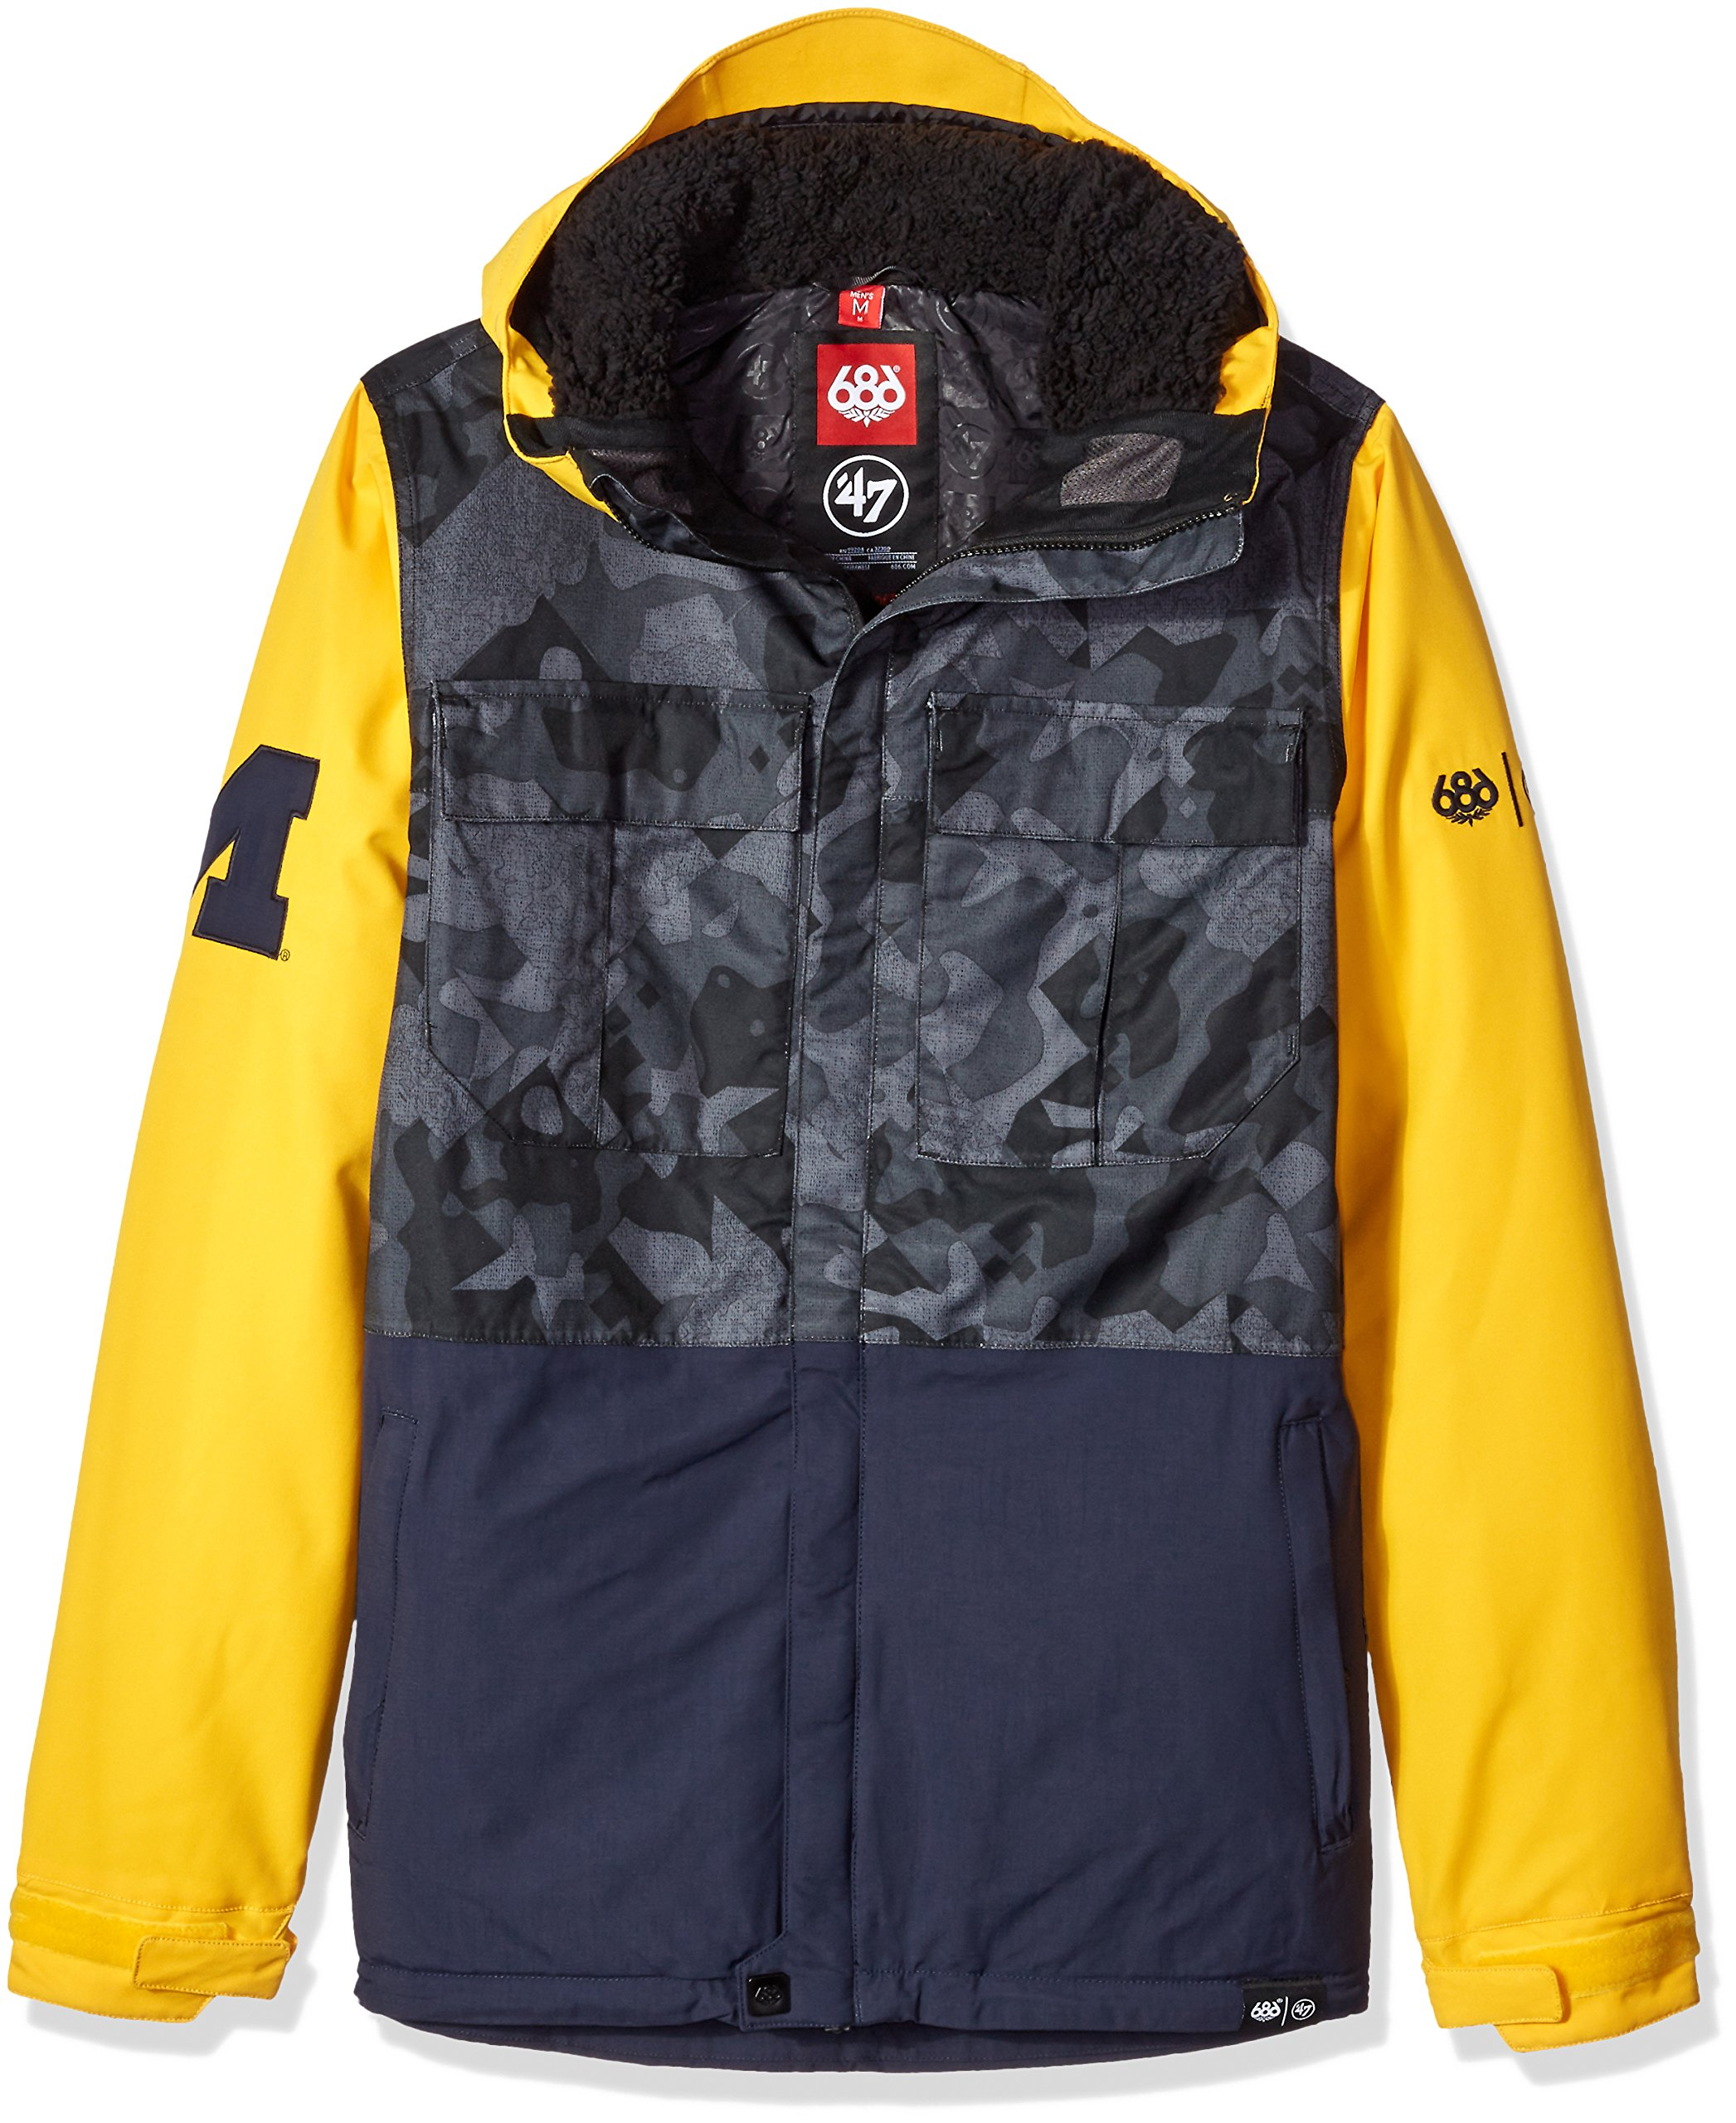 686x47 NCAA Michigan Wolverines Men's Victory Insulated Jacket, X-Large, Michigan Navy